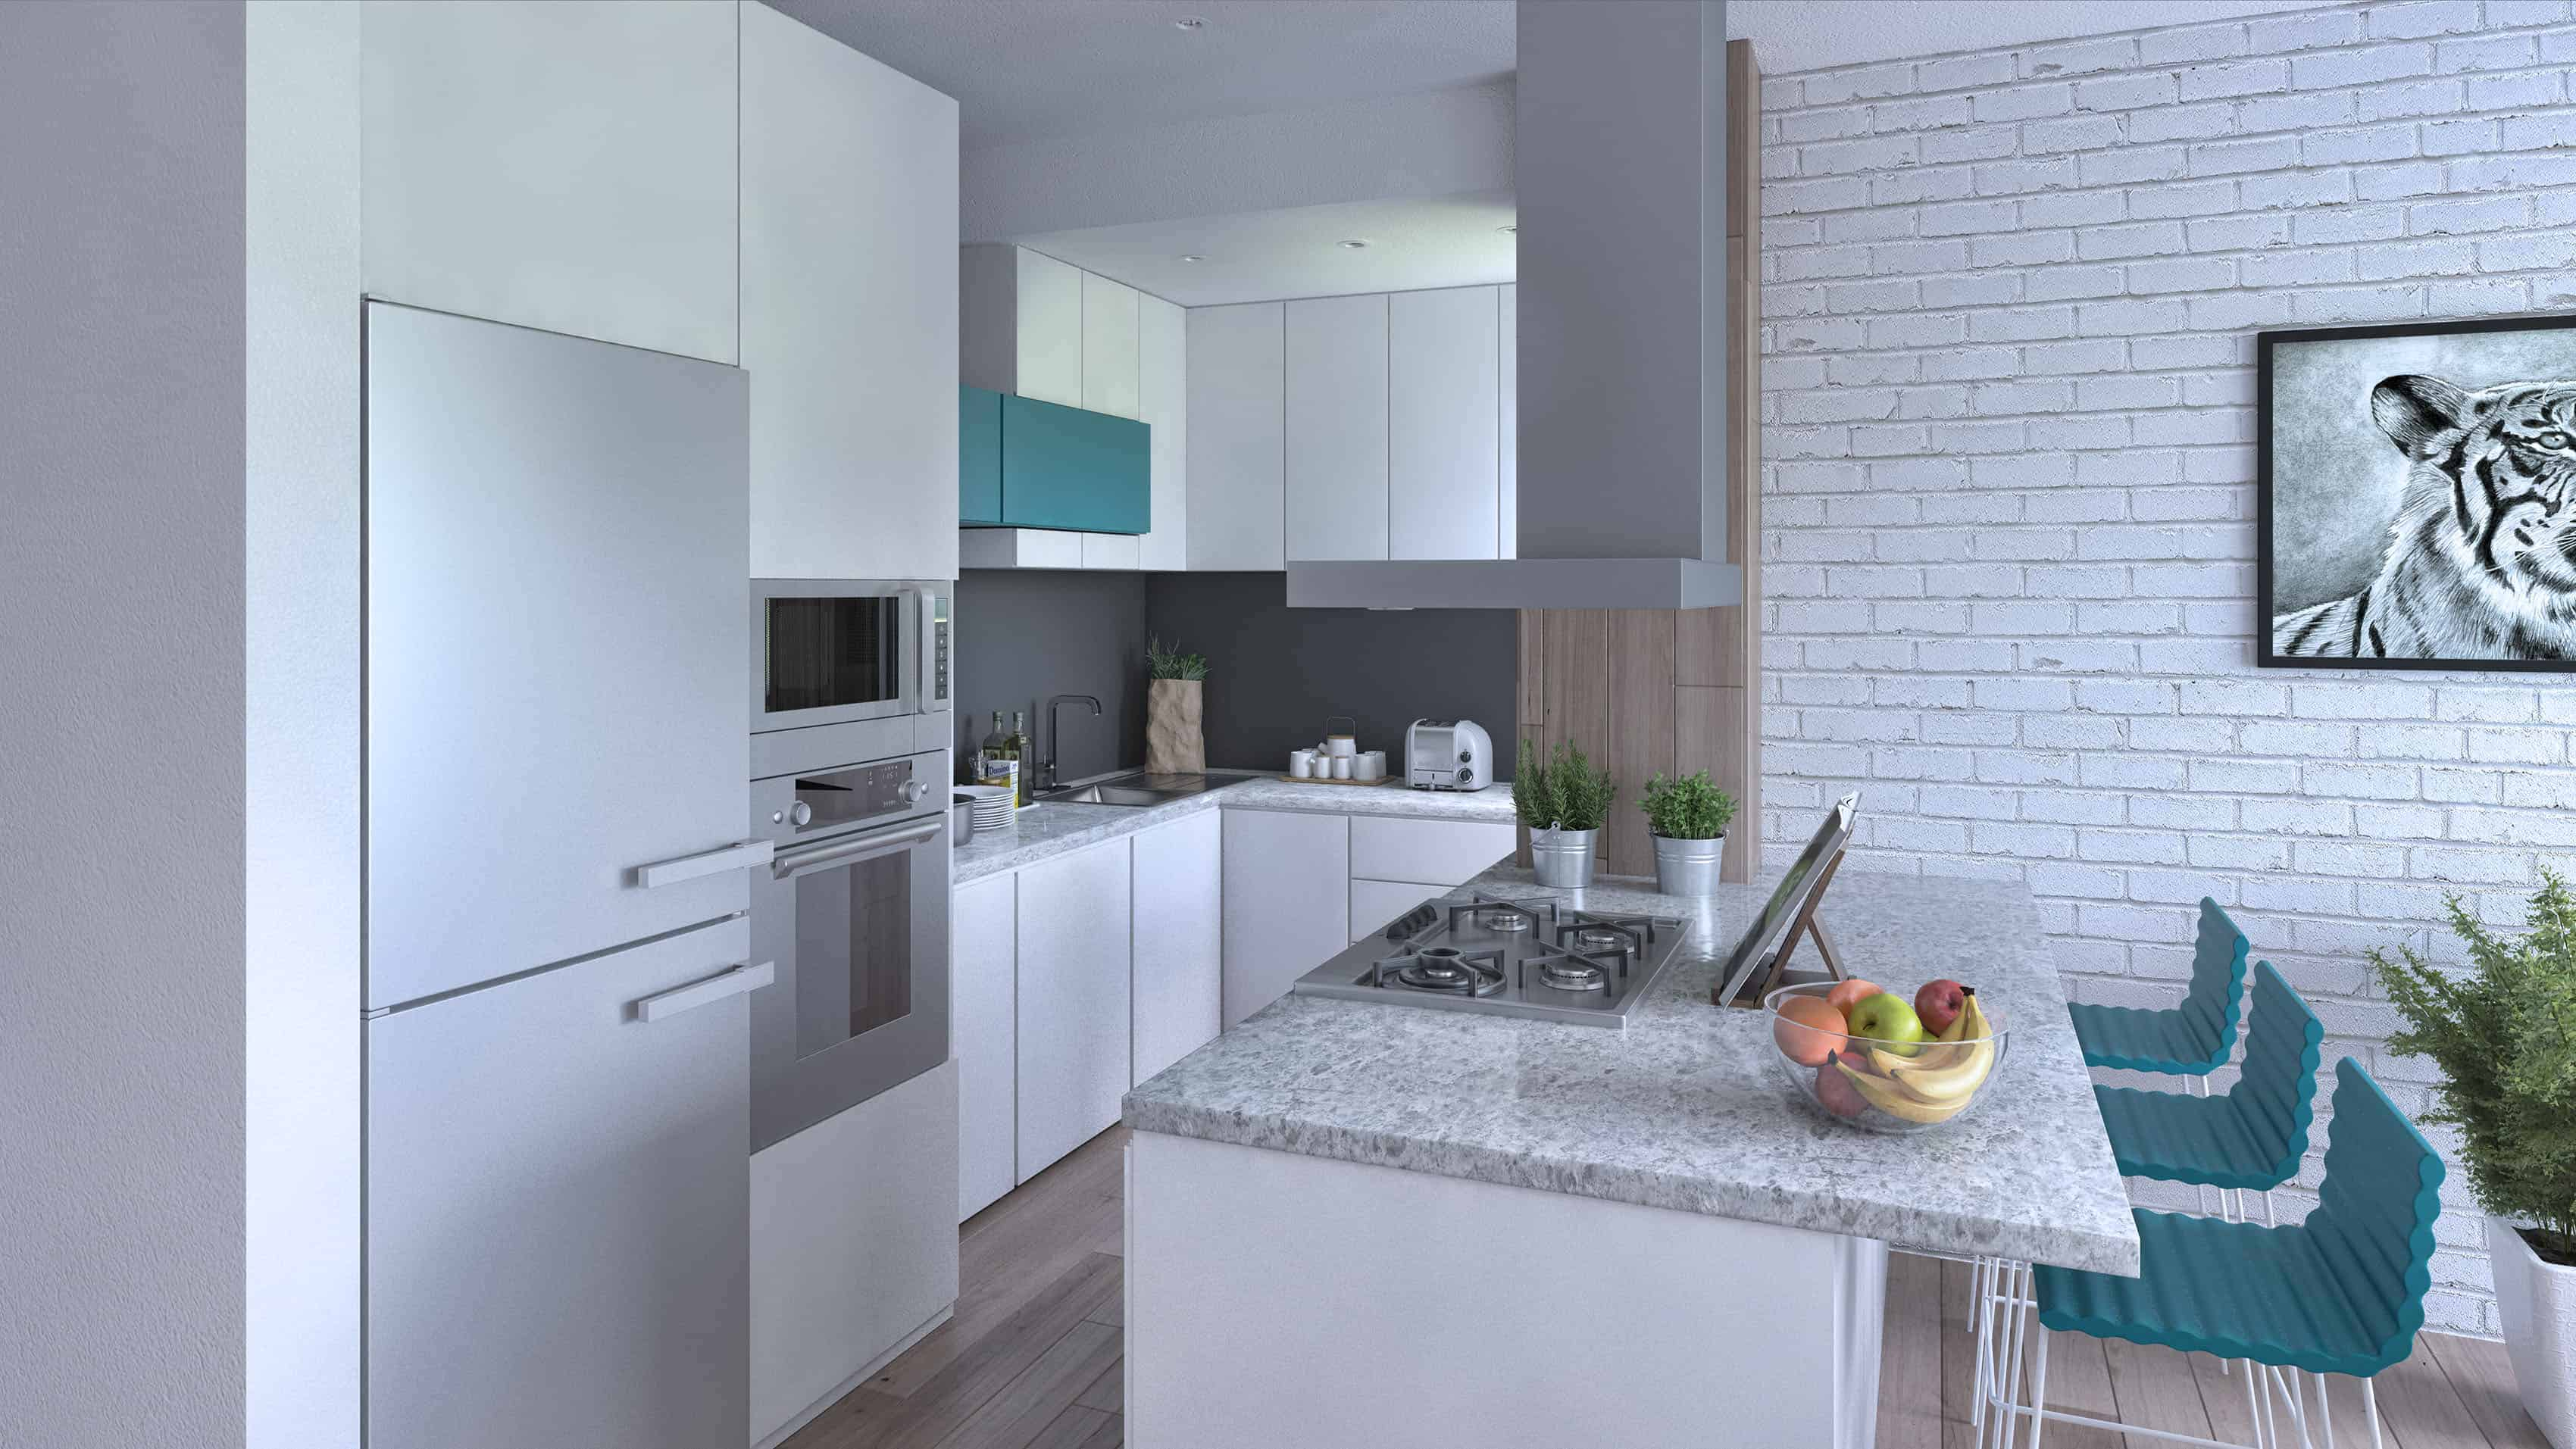 Prashka Kitchen Design Ideas How To Build Courtesy Light V Ray Render Engine Is Used For Texturing And Lighting The Scene Lightened With Dome That